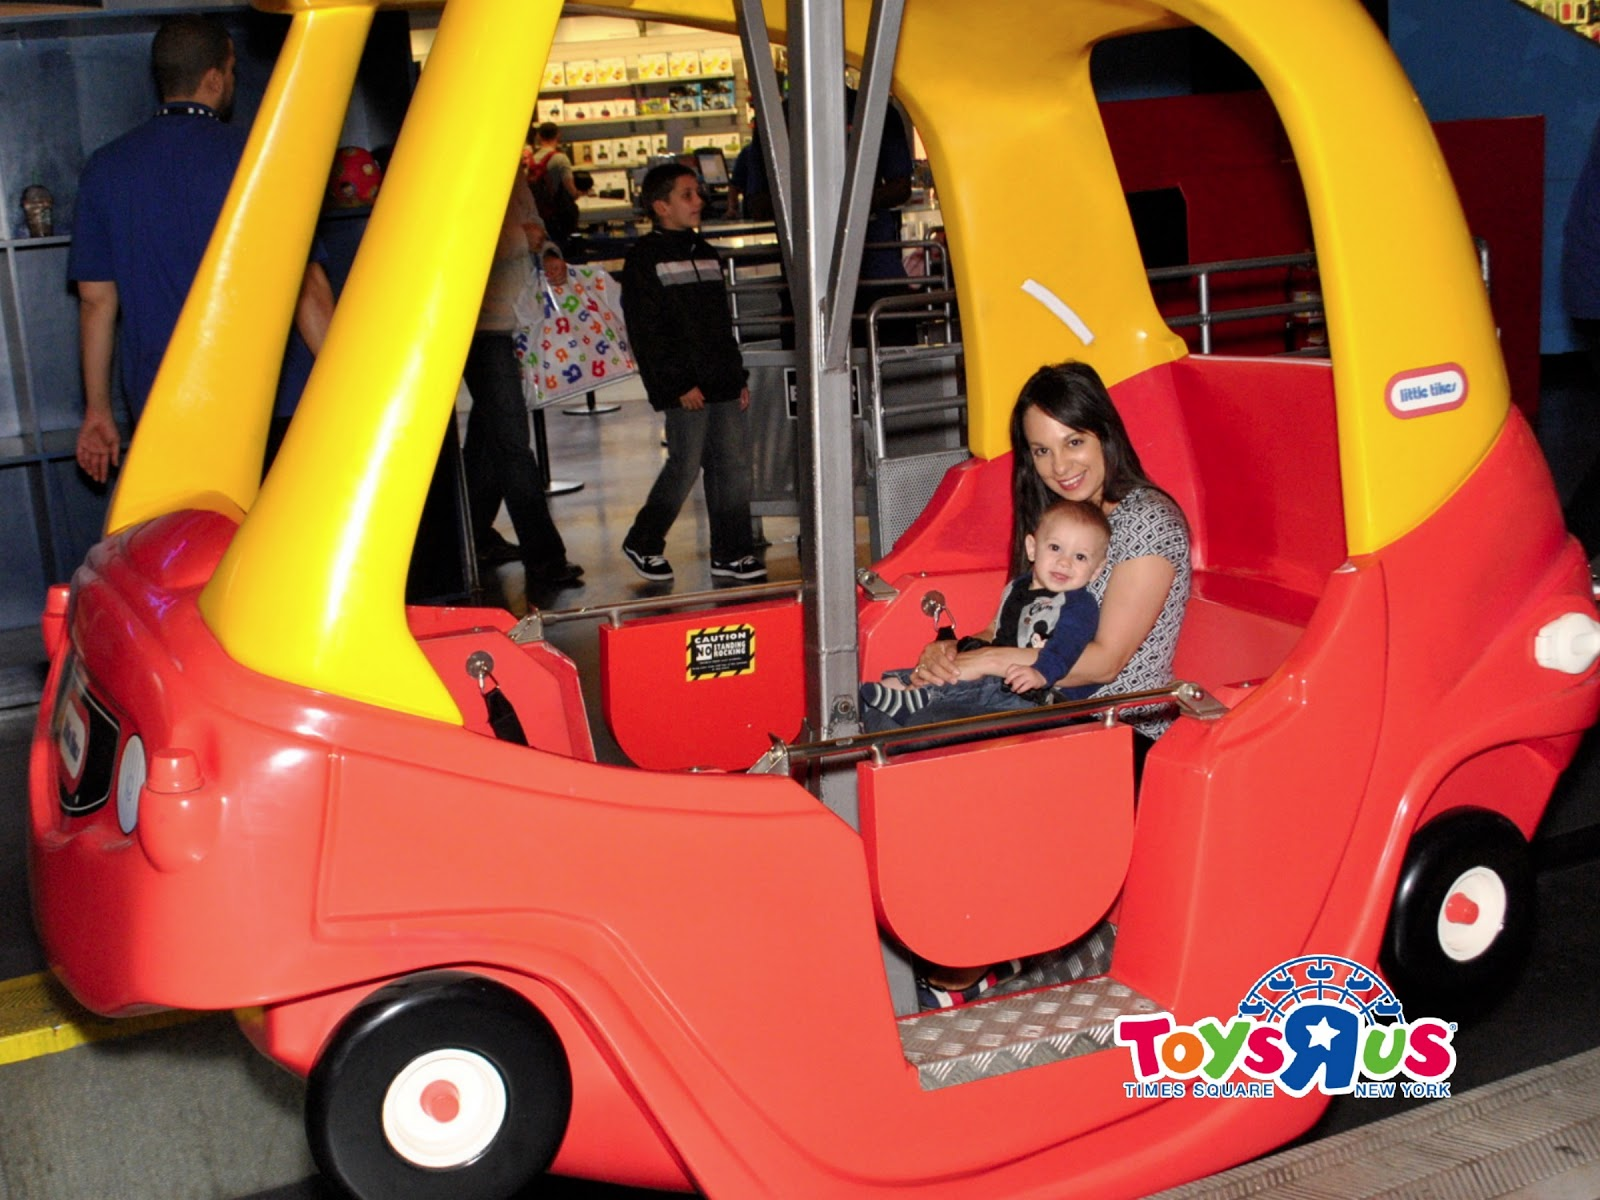 Phoenix s Baby Book Club Riding the Ferris Wheel at Toys R Us